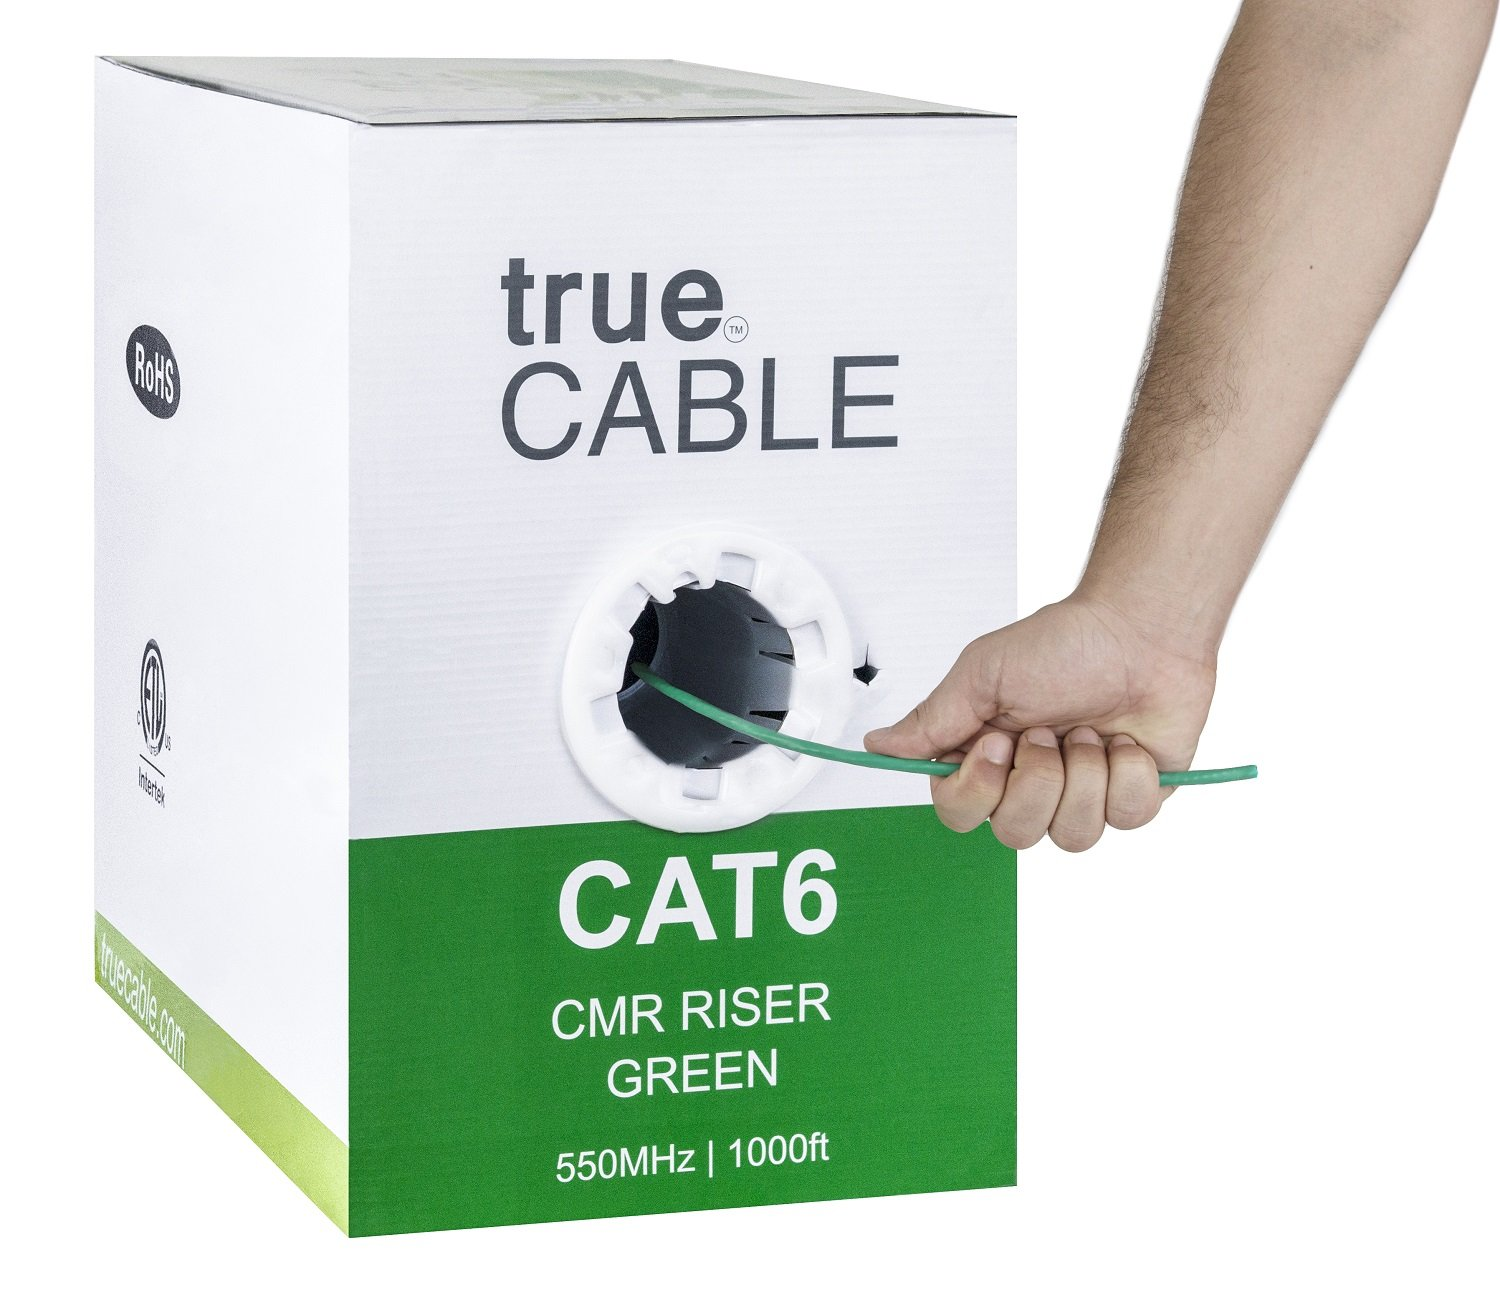 Cat6 Riser (CMR), 1000ft, Green, Solid Bare Copper Bulk Ethernet Cable, 550MHz, ETL Listed, 23AWG 4 Pair, Unshielded Twisted Pair (UTP), trueCABLE